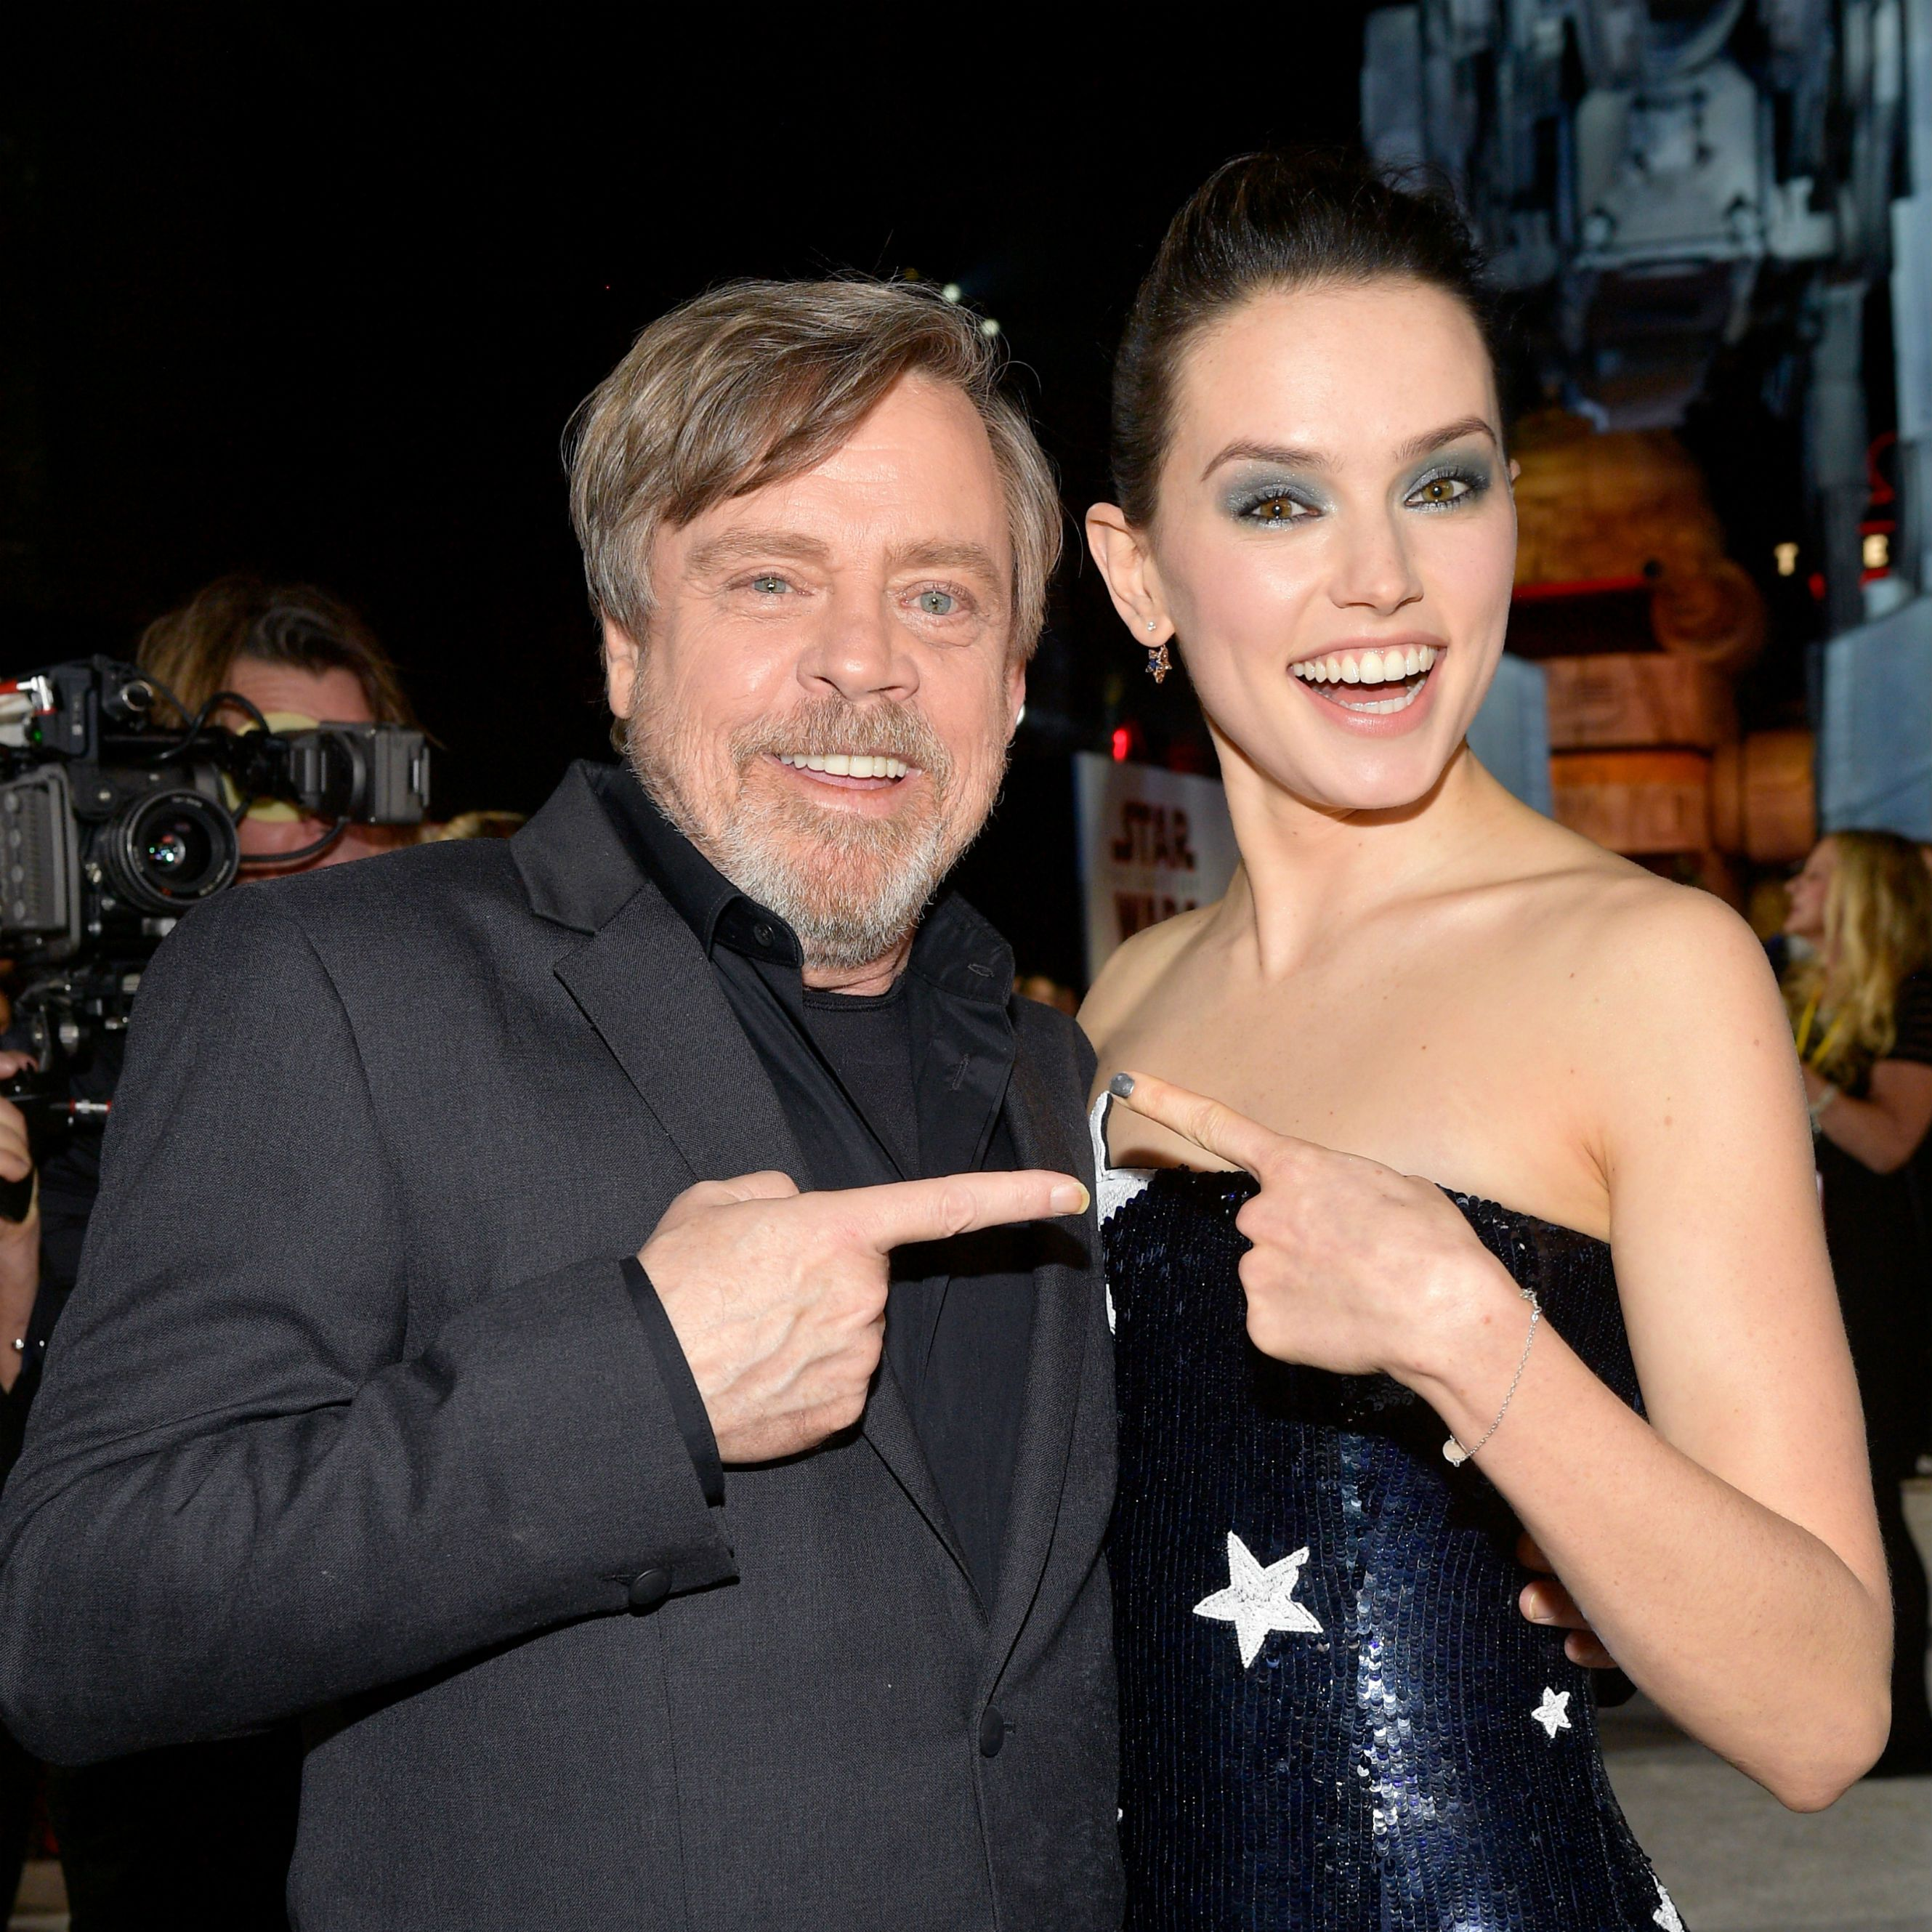 Star Wars' Mark Hamill says Disney is not happy about him teasing fans